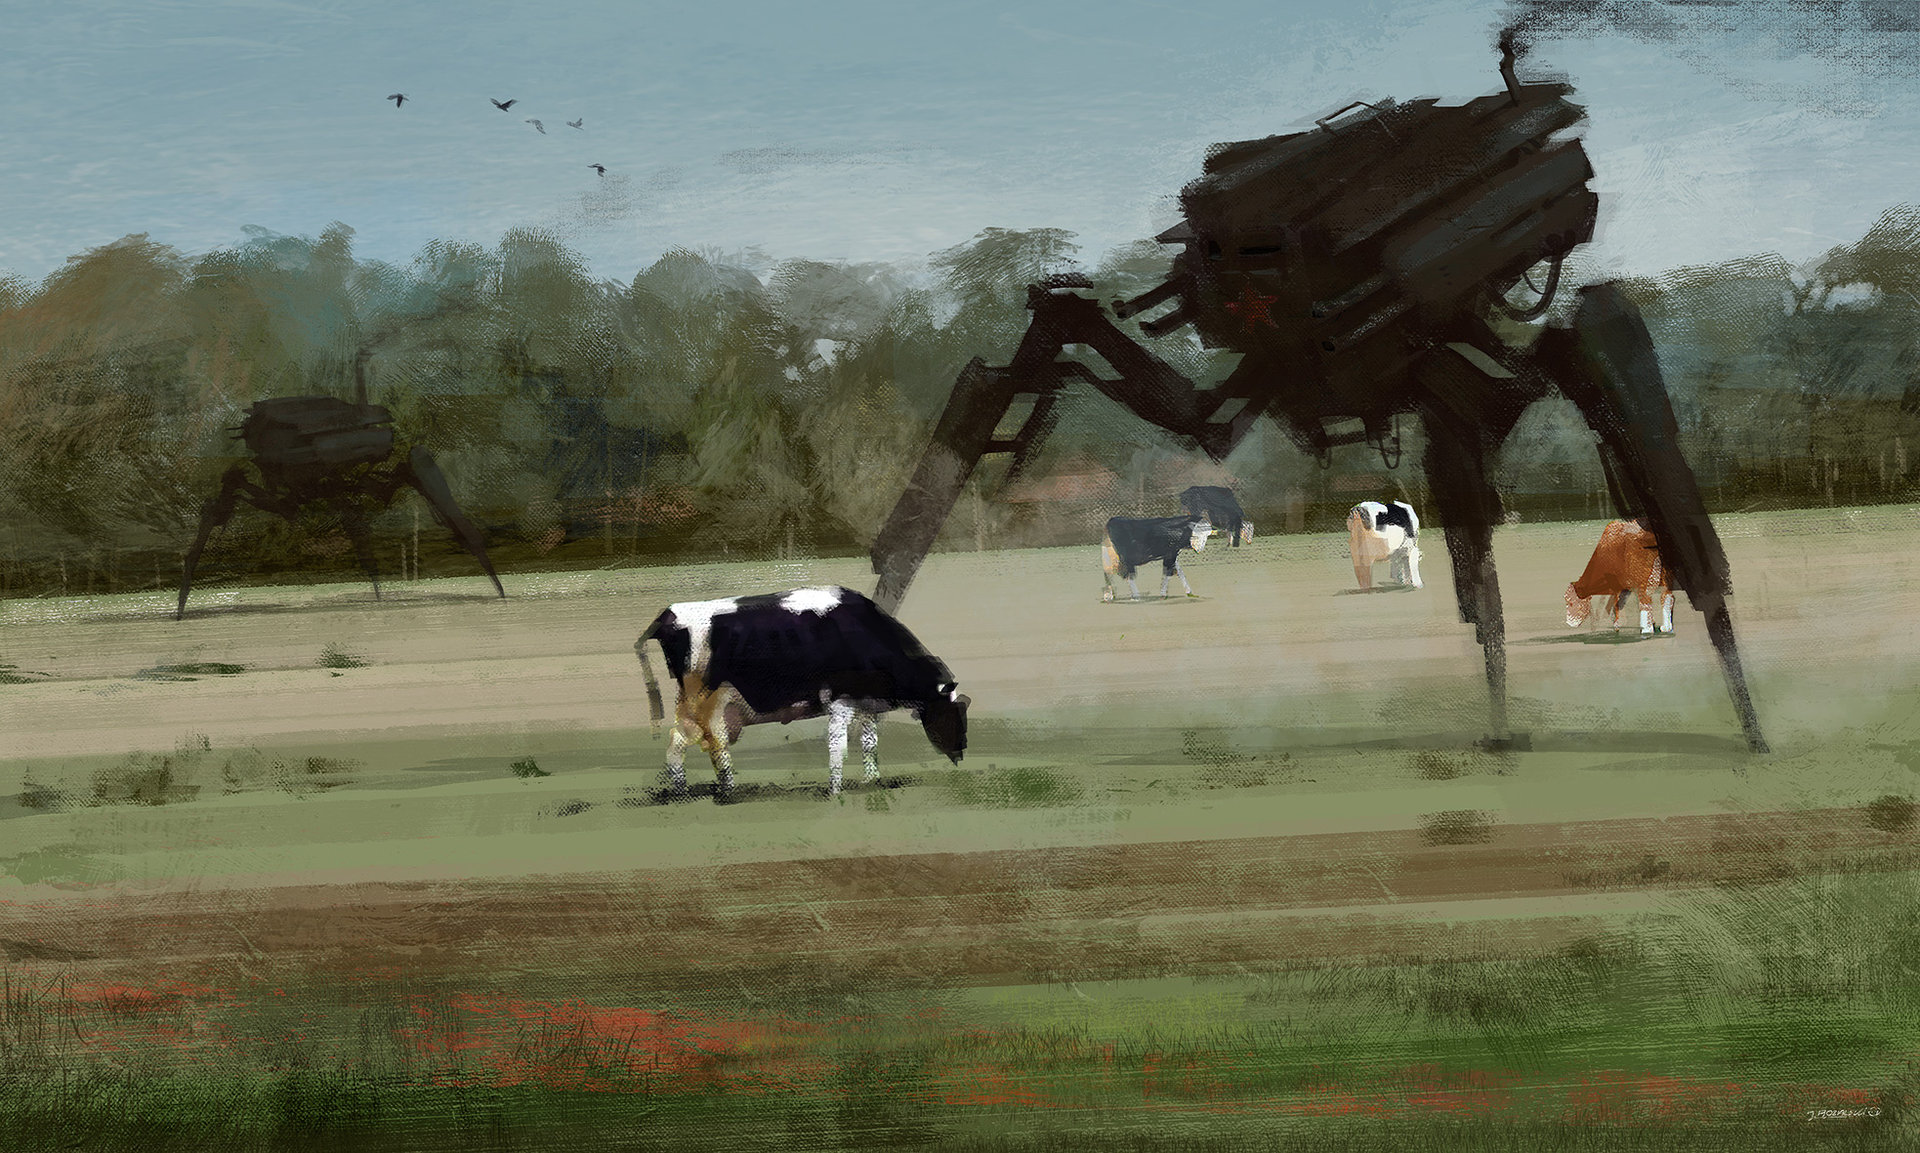 Jakub_Rozalski_-_1920 you shall not pass